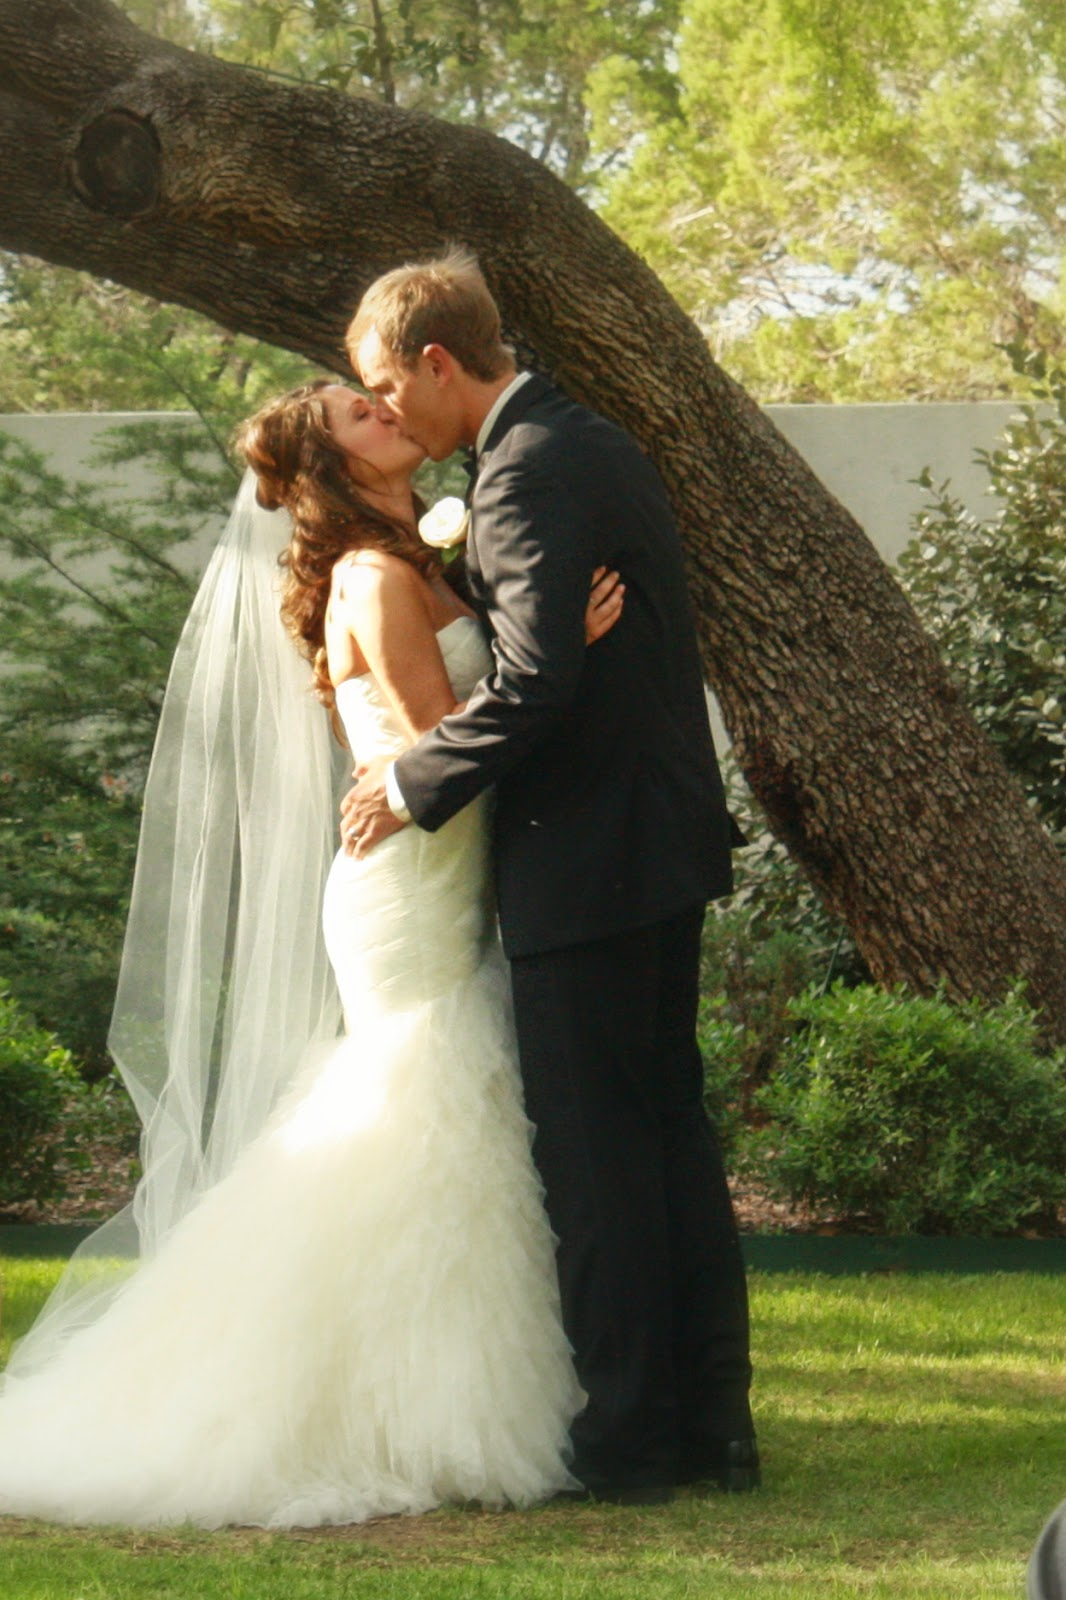 bride, groom, kiss, wedding, the gradens at west green, wedding dress,  mermaid gown, tuxedo